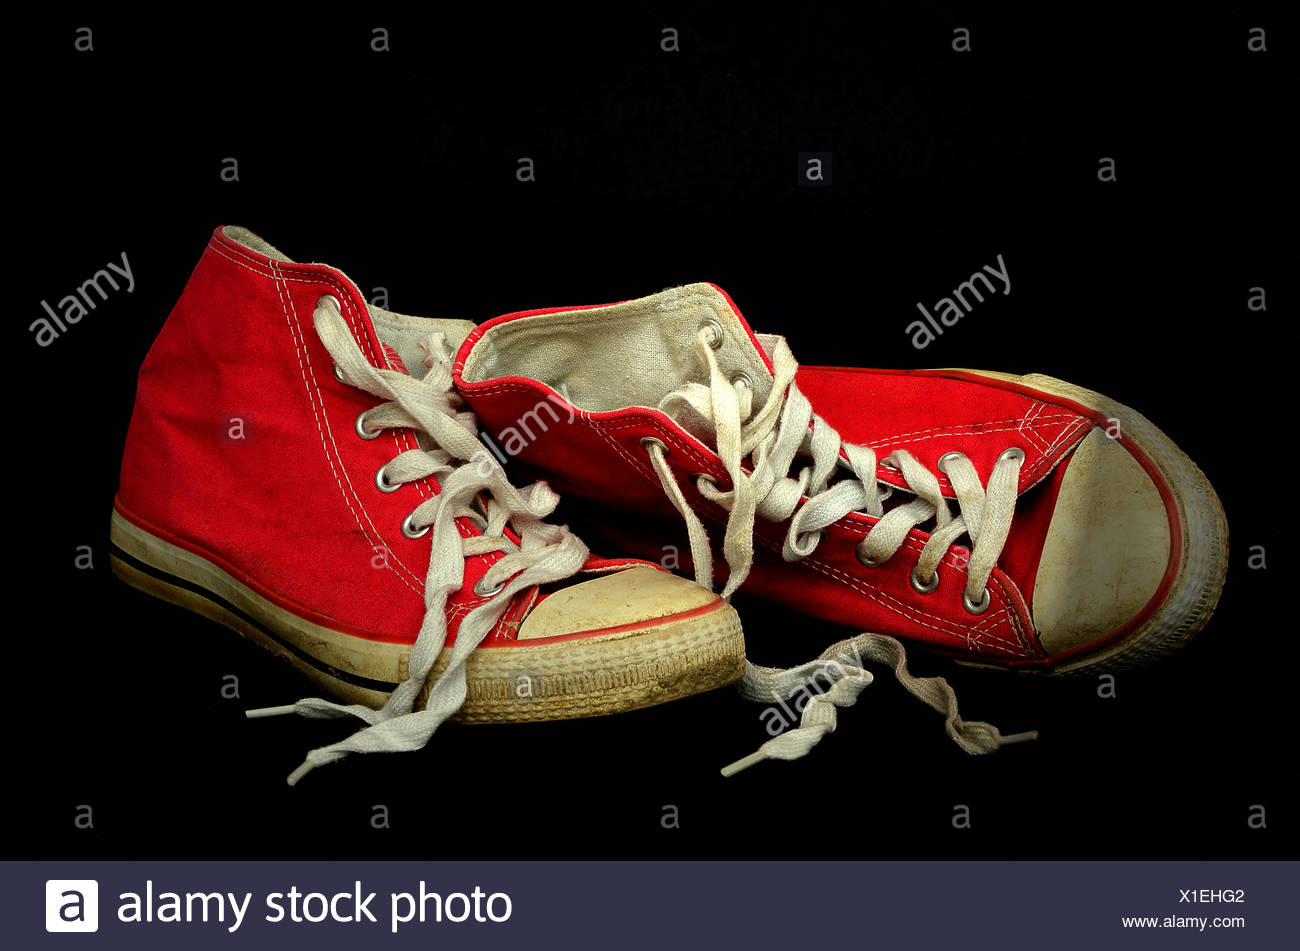 Worn red Chucks, sneakers Stock Photo